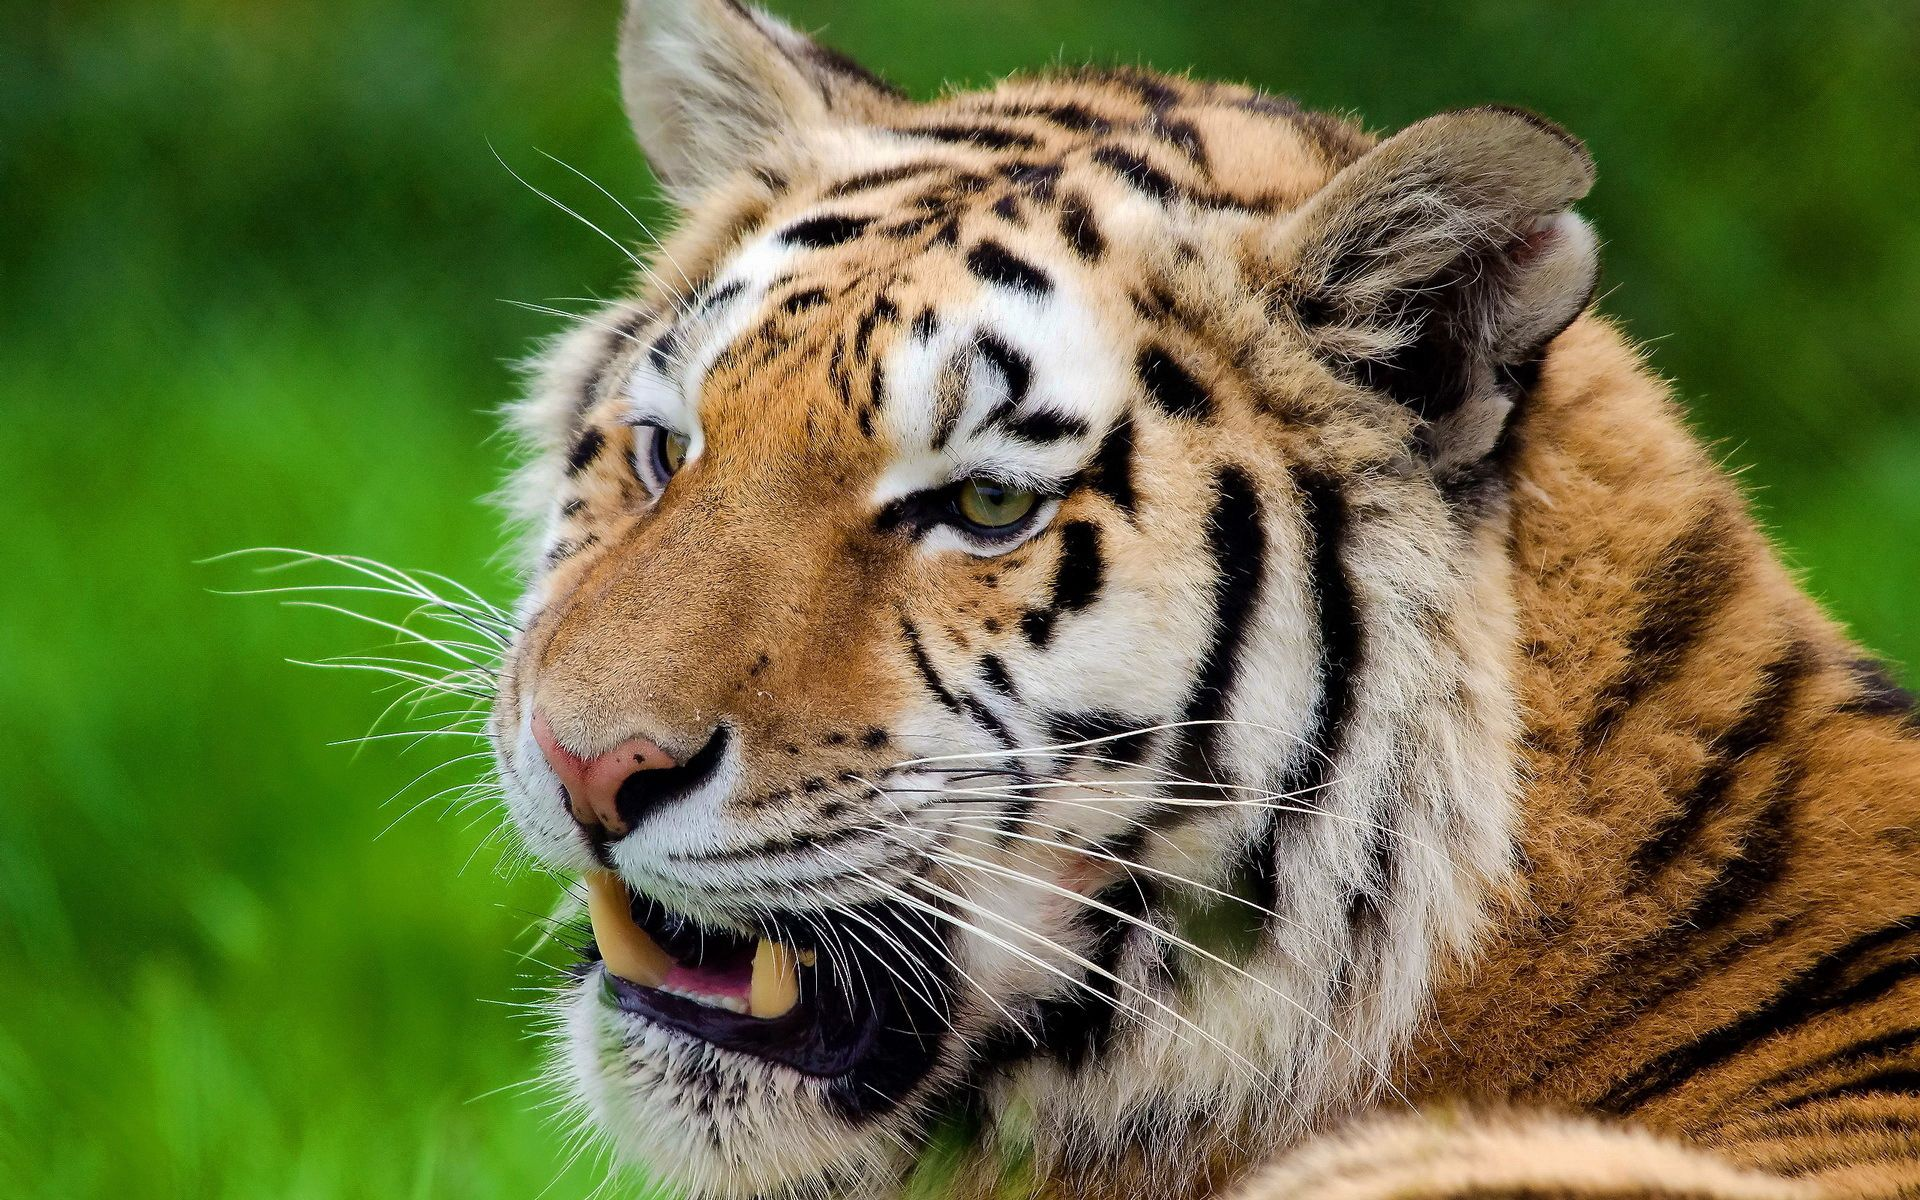 98427 download wallpaper Animals, Tiger, Grin, Predator, Muzzle screensavers and pictures for free